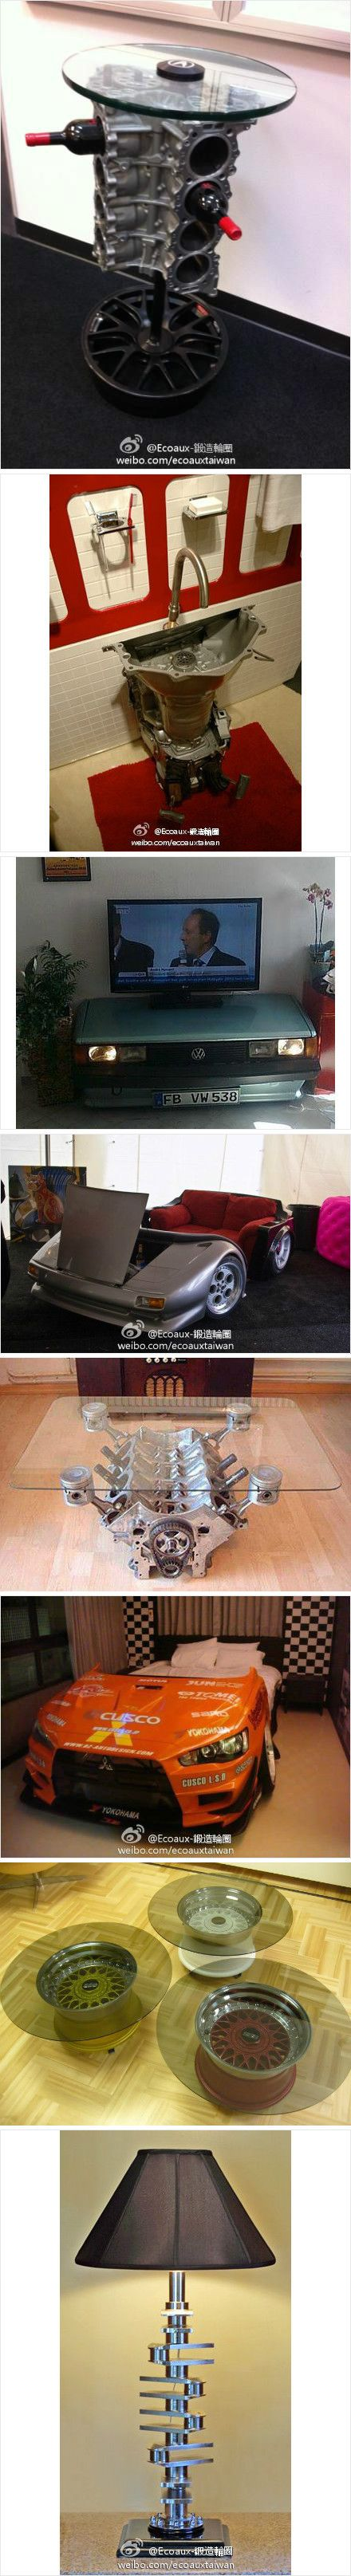 Repurposed Car Parts - Motorcycle table | Landscaping ideas ...